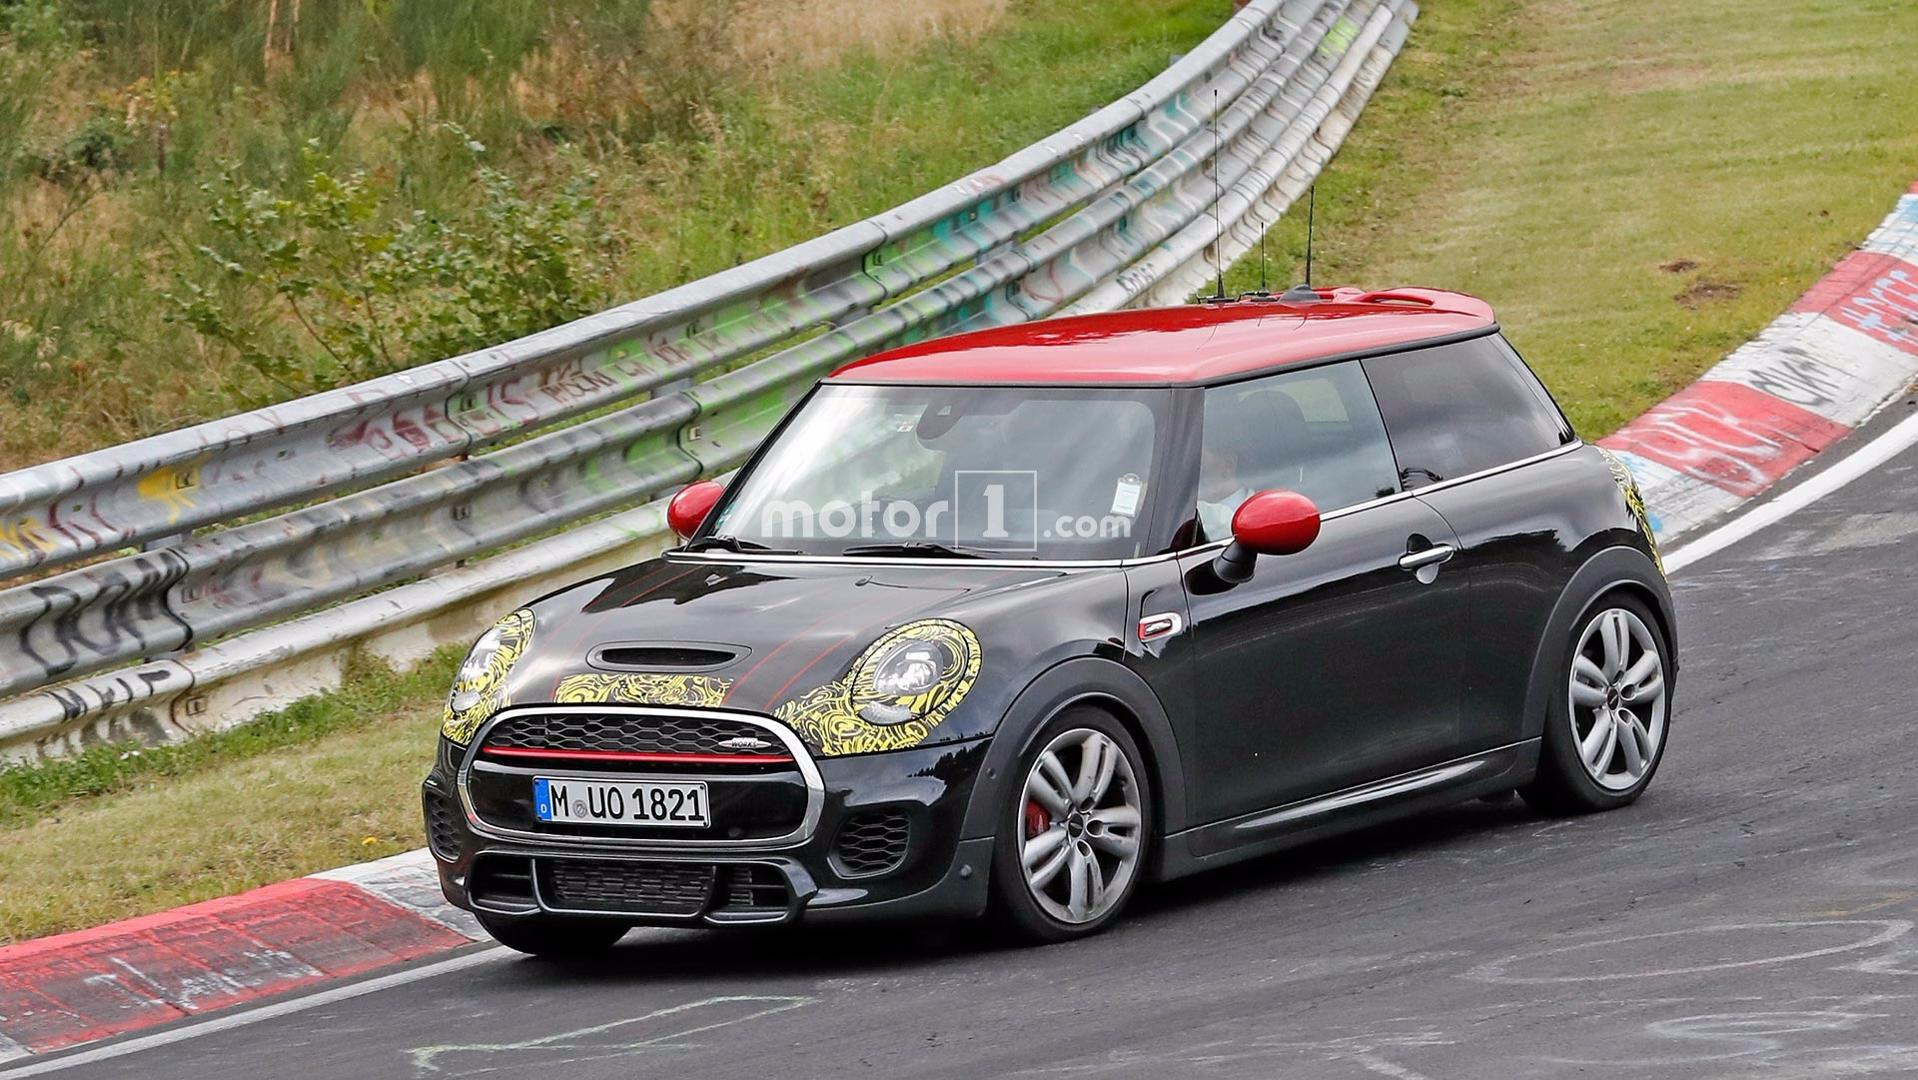 Mini Spied Running Refreshed Cooper Jcw At The Nürburgring